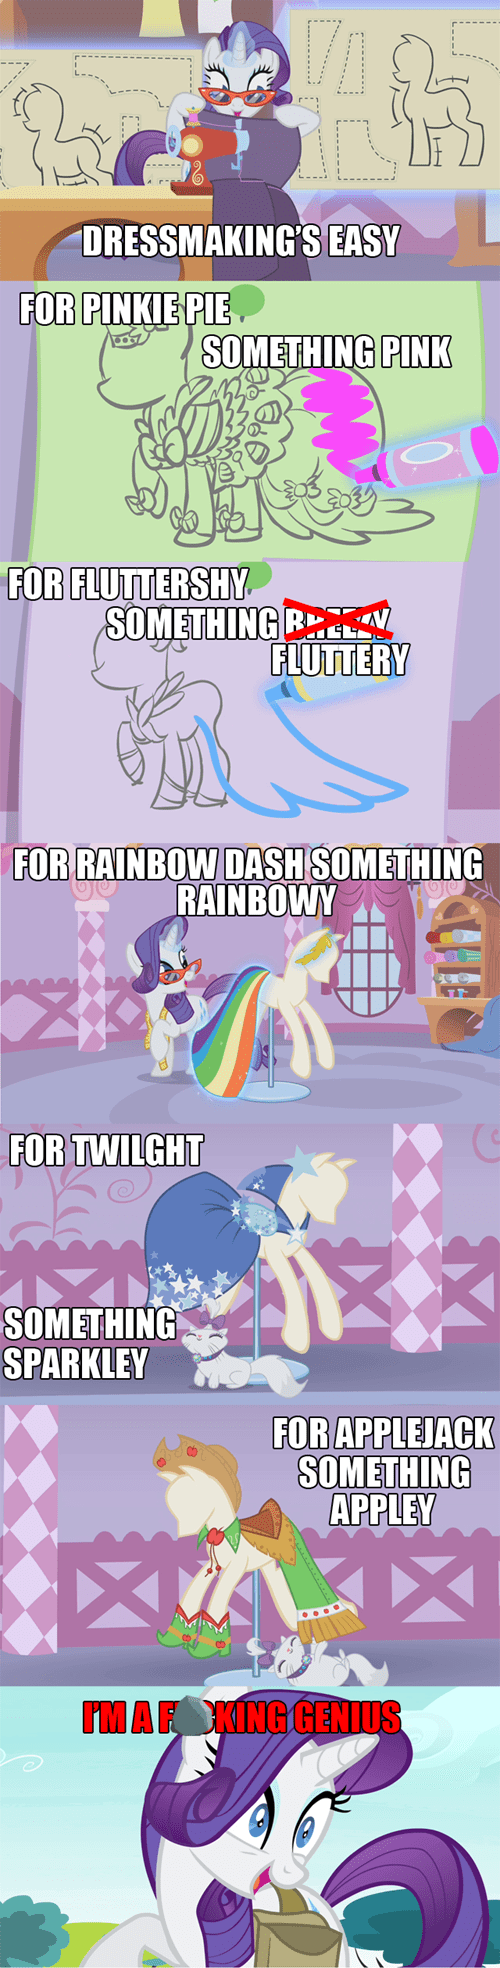 my-little-brony-rarity-is-best-designer